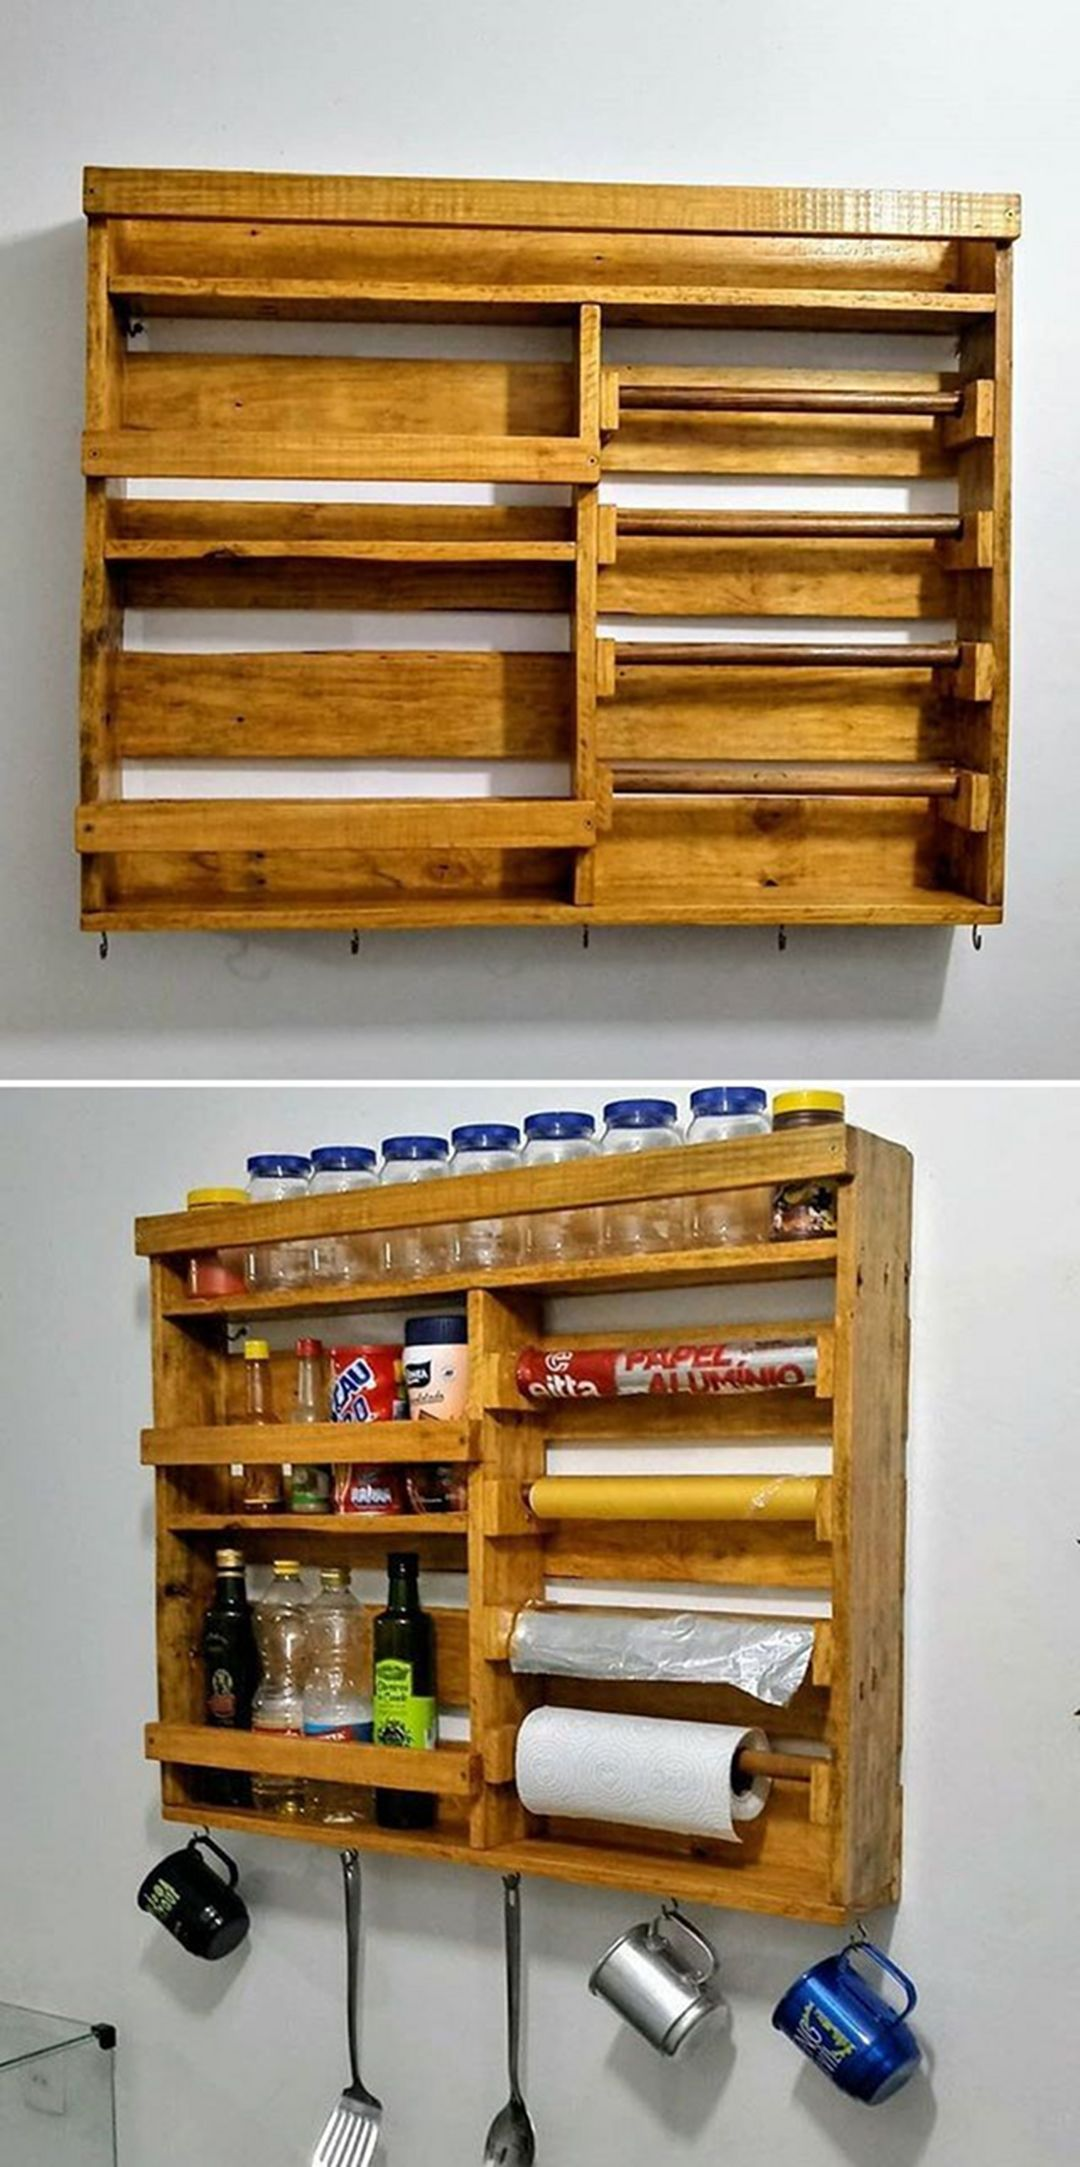 13 Most Easy DIY Wood Pallet Project For Home Decorations